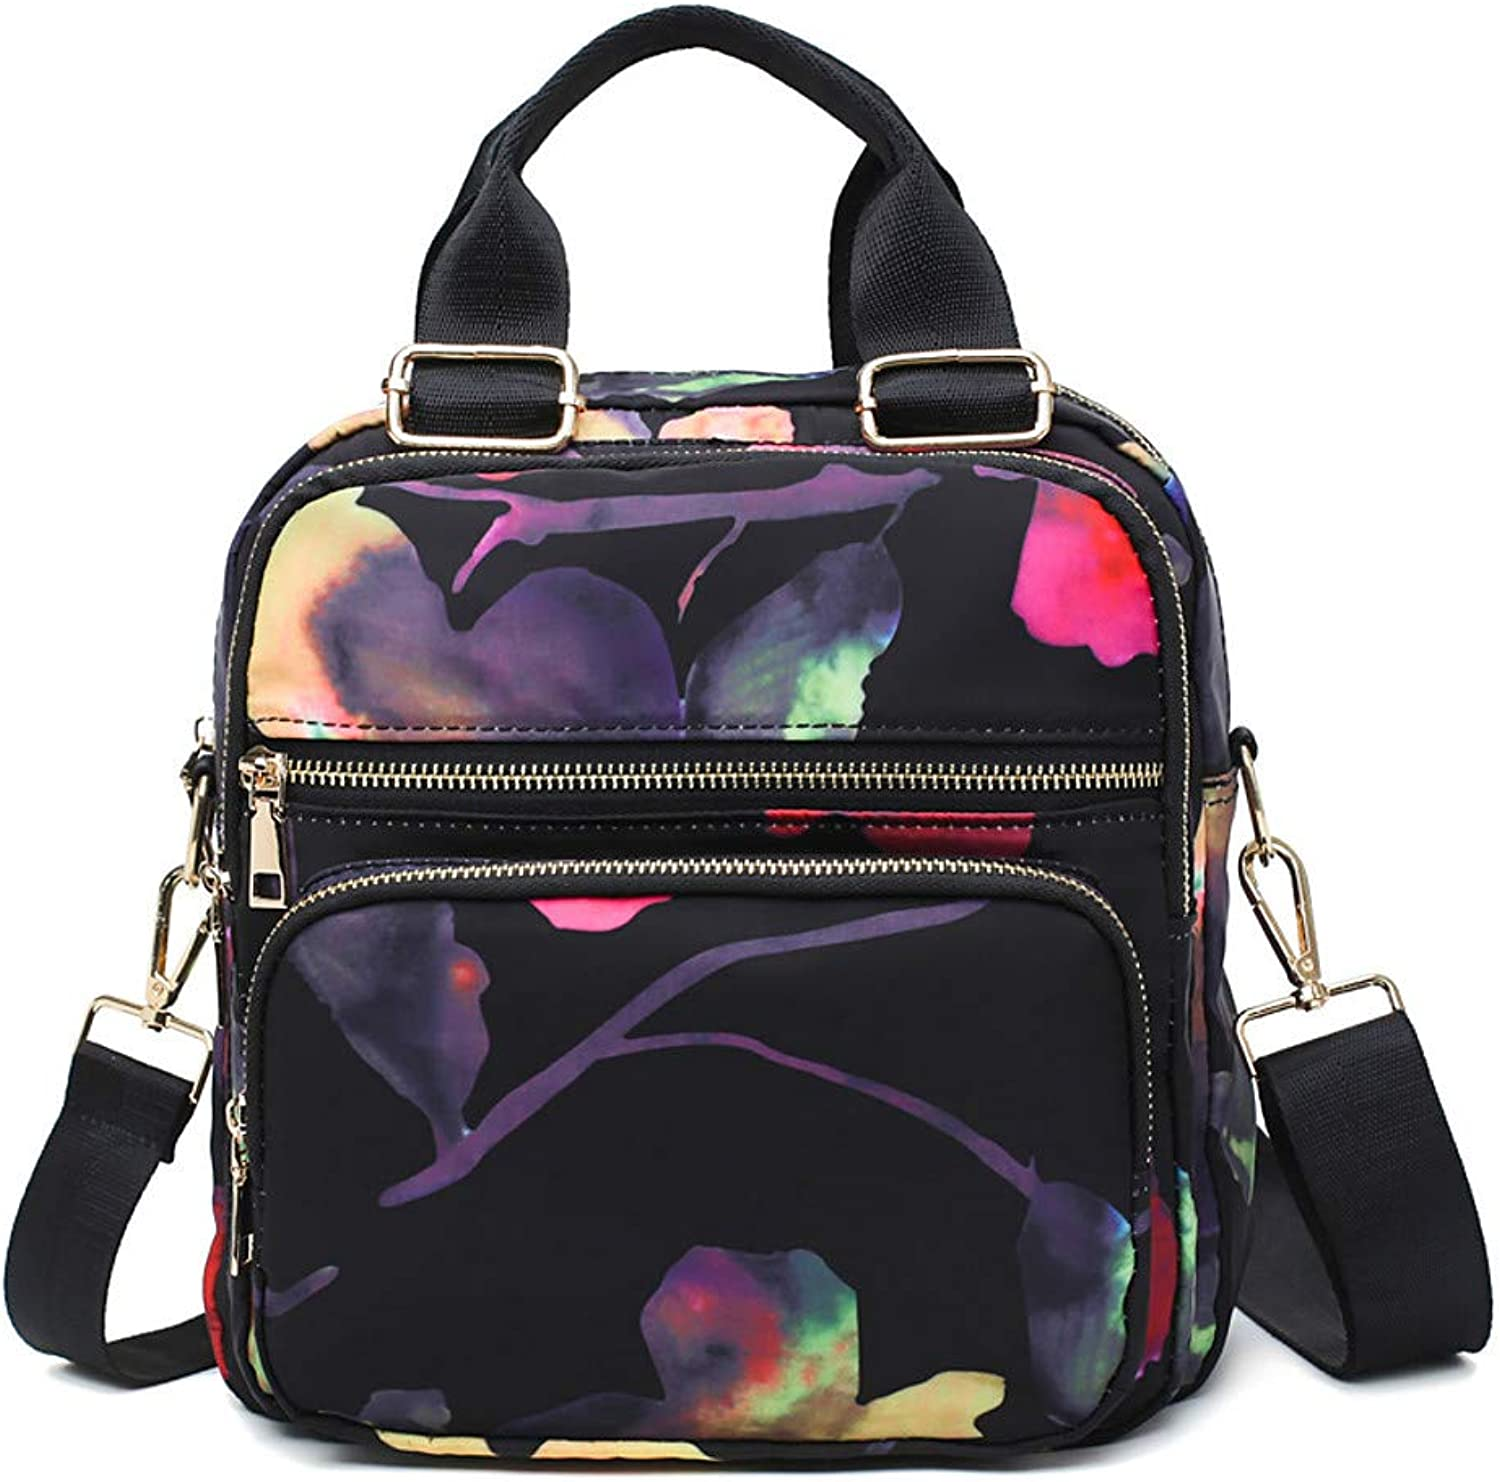 Show Time backpack:Women's Bags Oxford Cloth Backpack Zipper Fruit Black